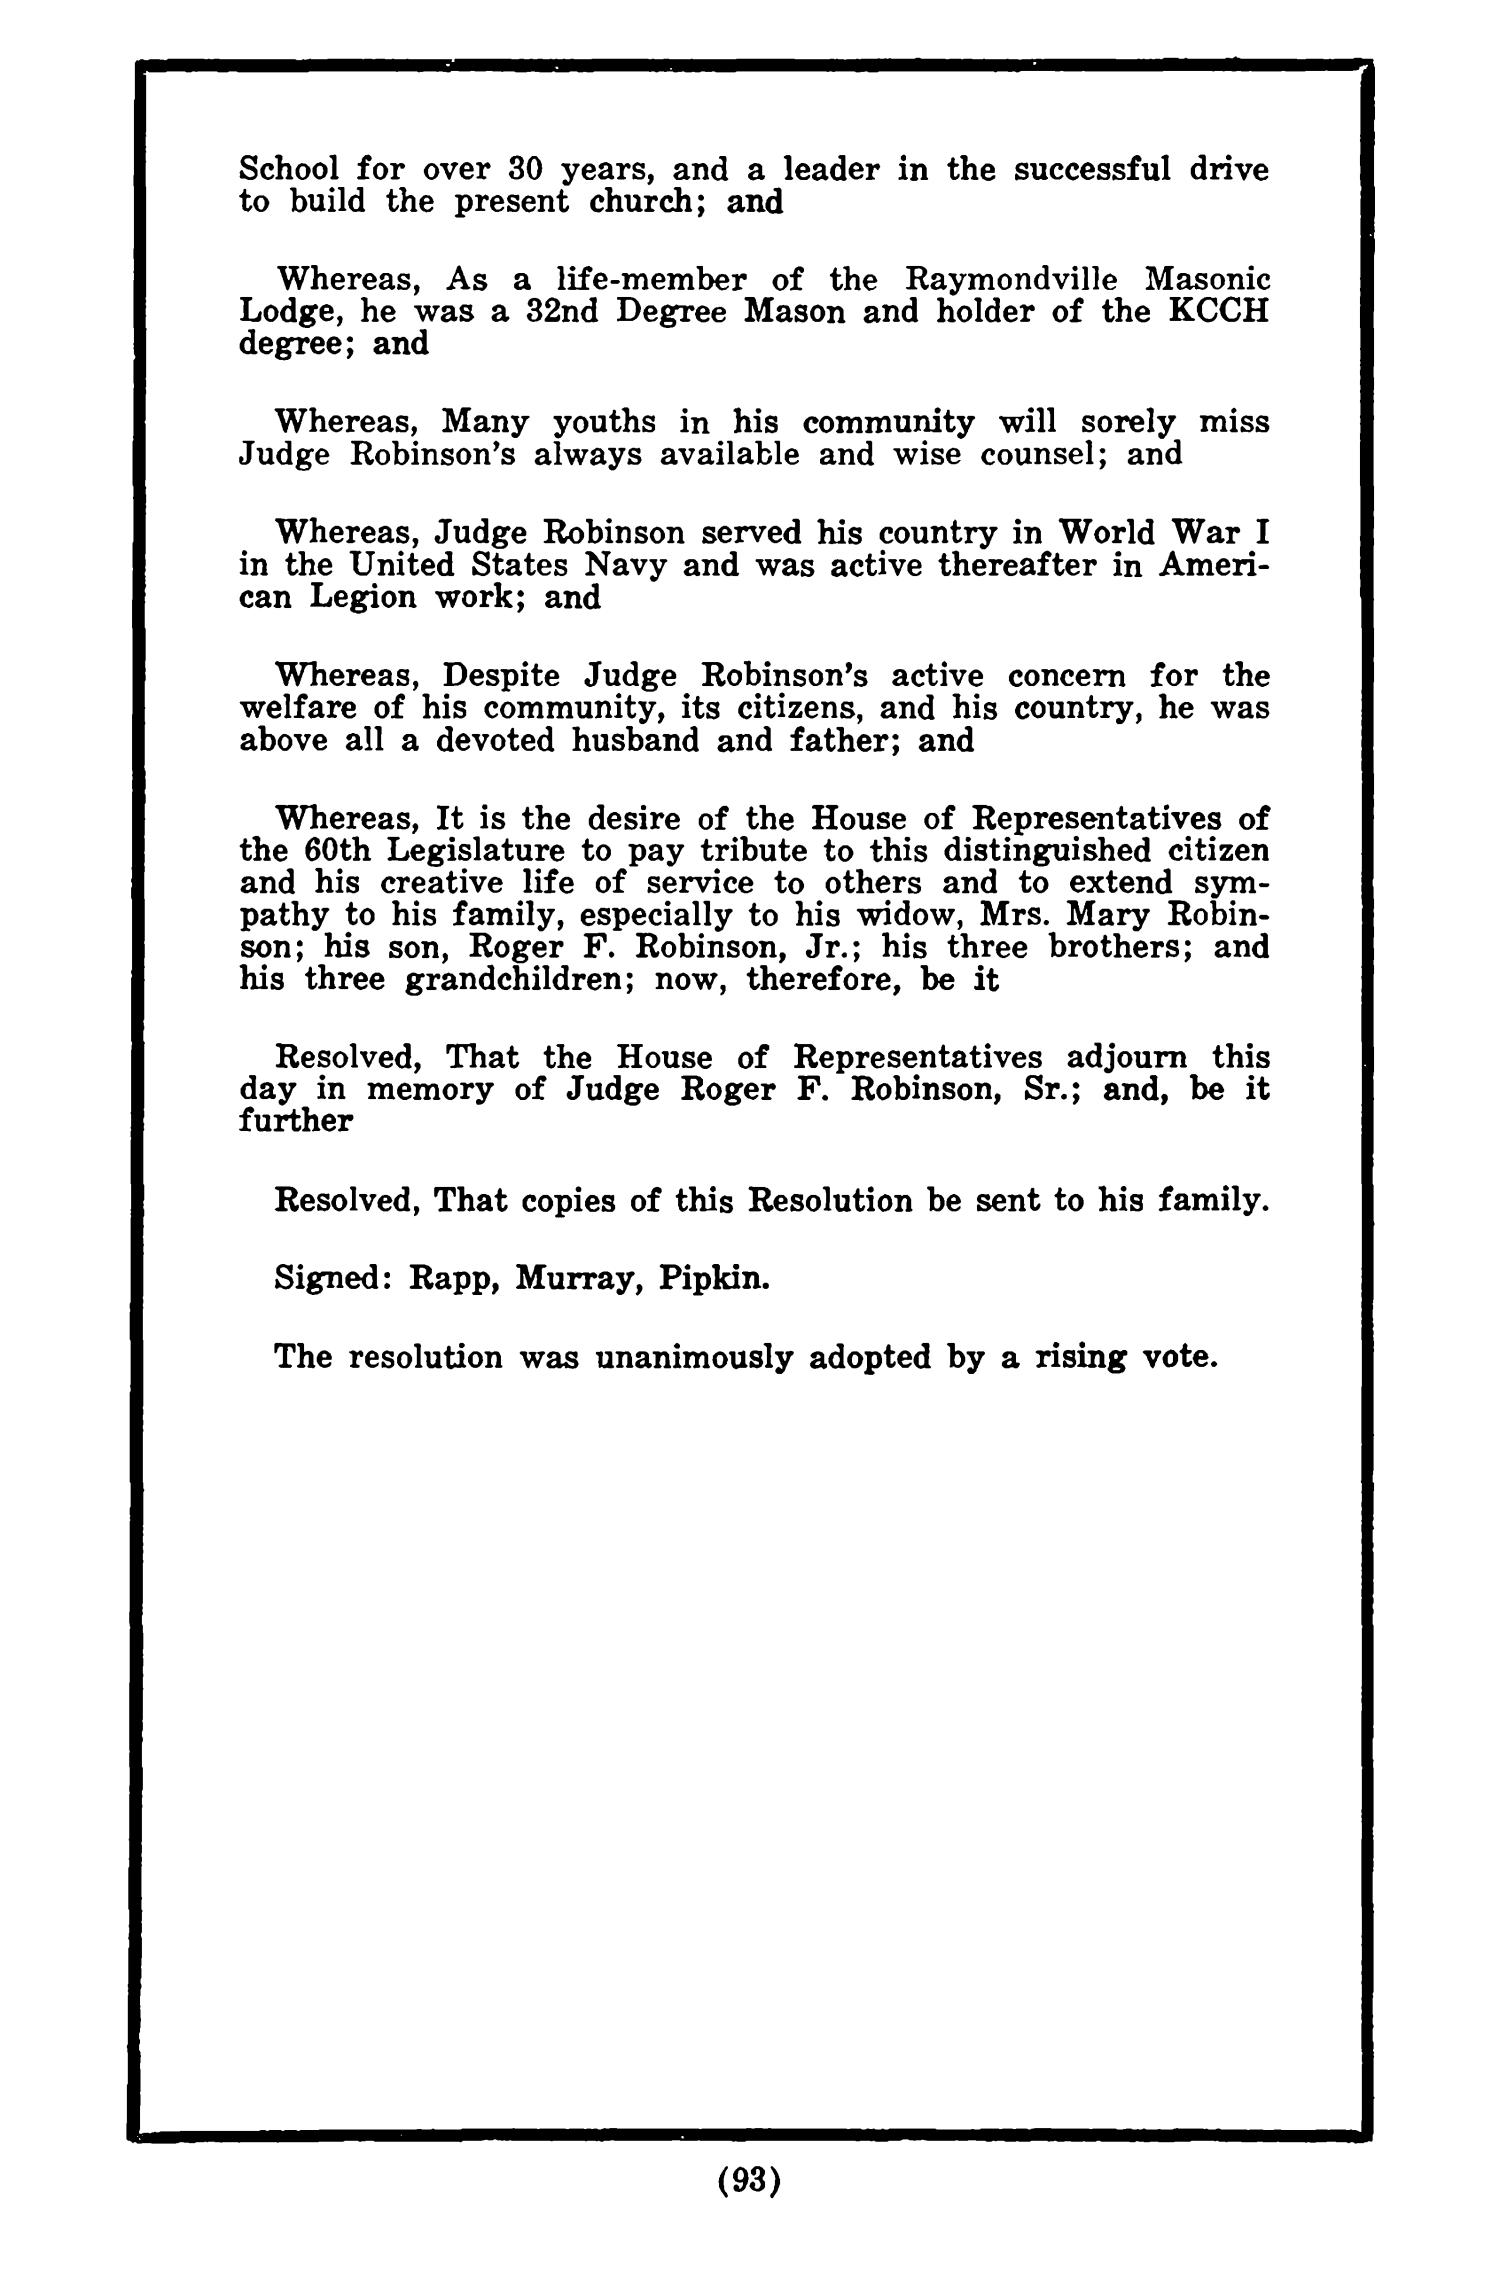 Journal of the House of Representatives of the Regular Session of the Sixtieth Legislature of the State of Texas, Volume 1                                                                                                      93